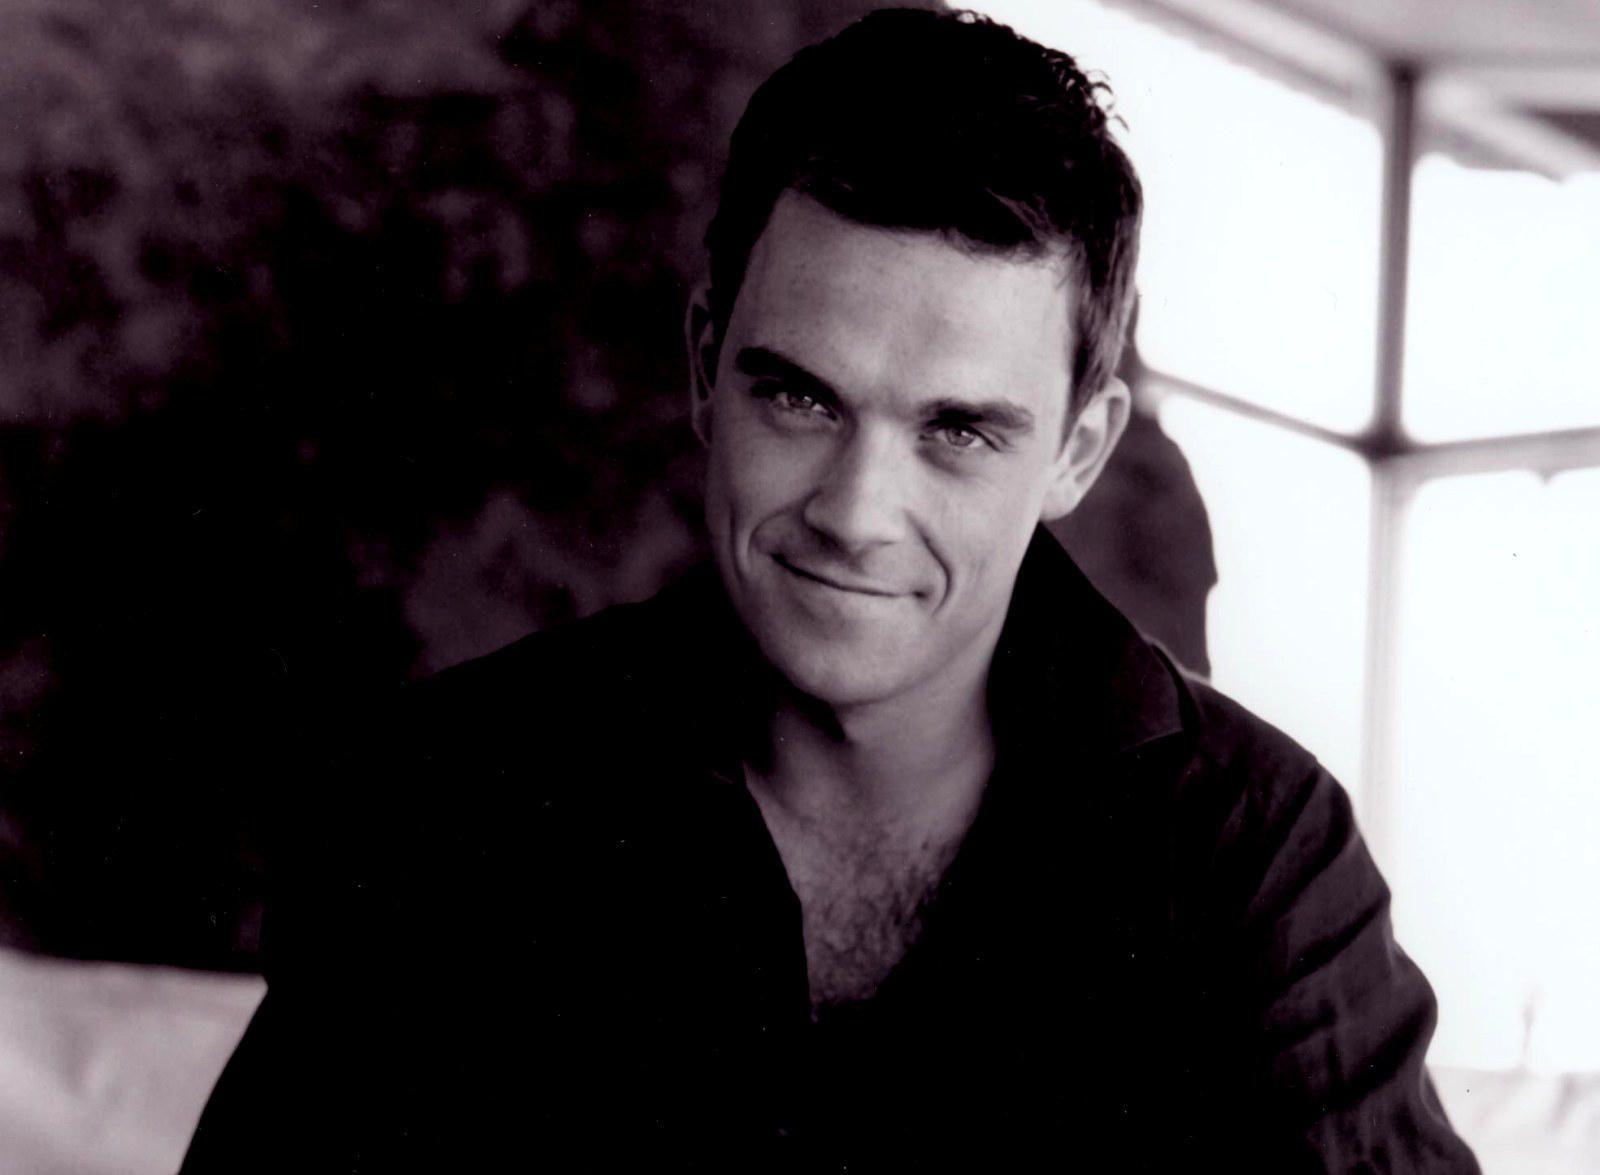 Robbie Williams: The Albums, Best to Worst (Updated) – Barry Reese